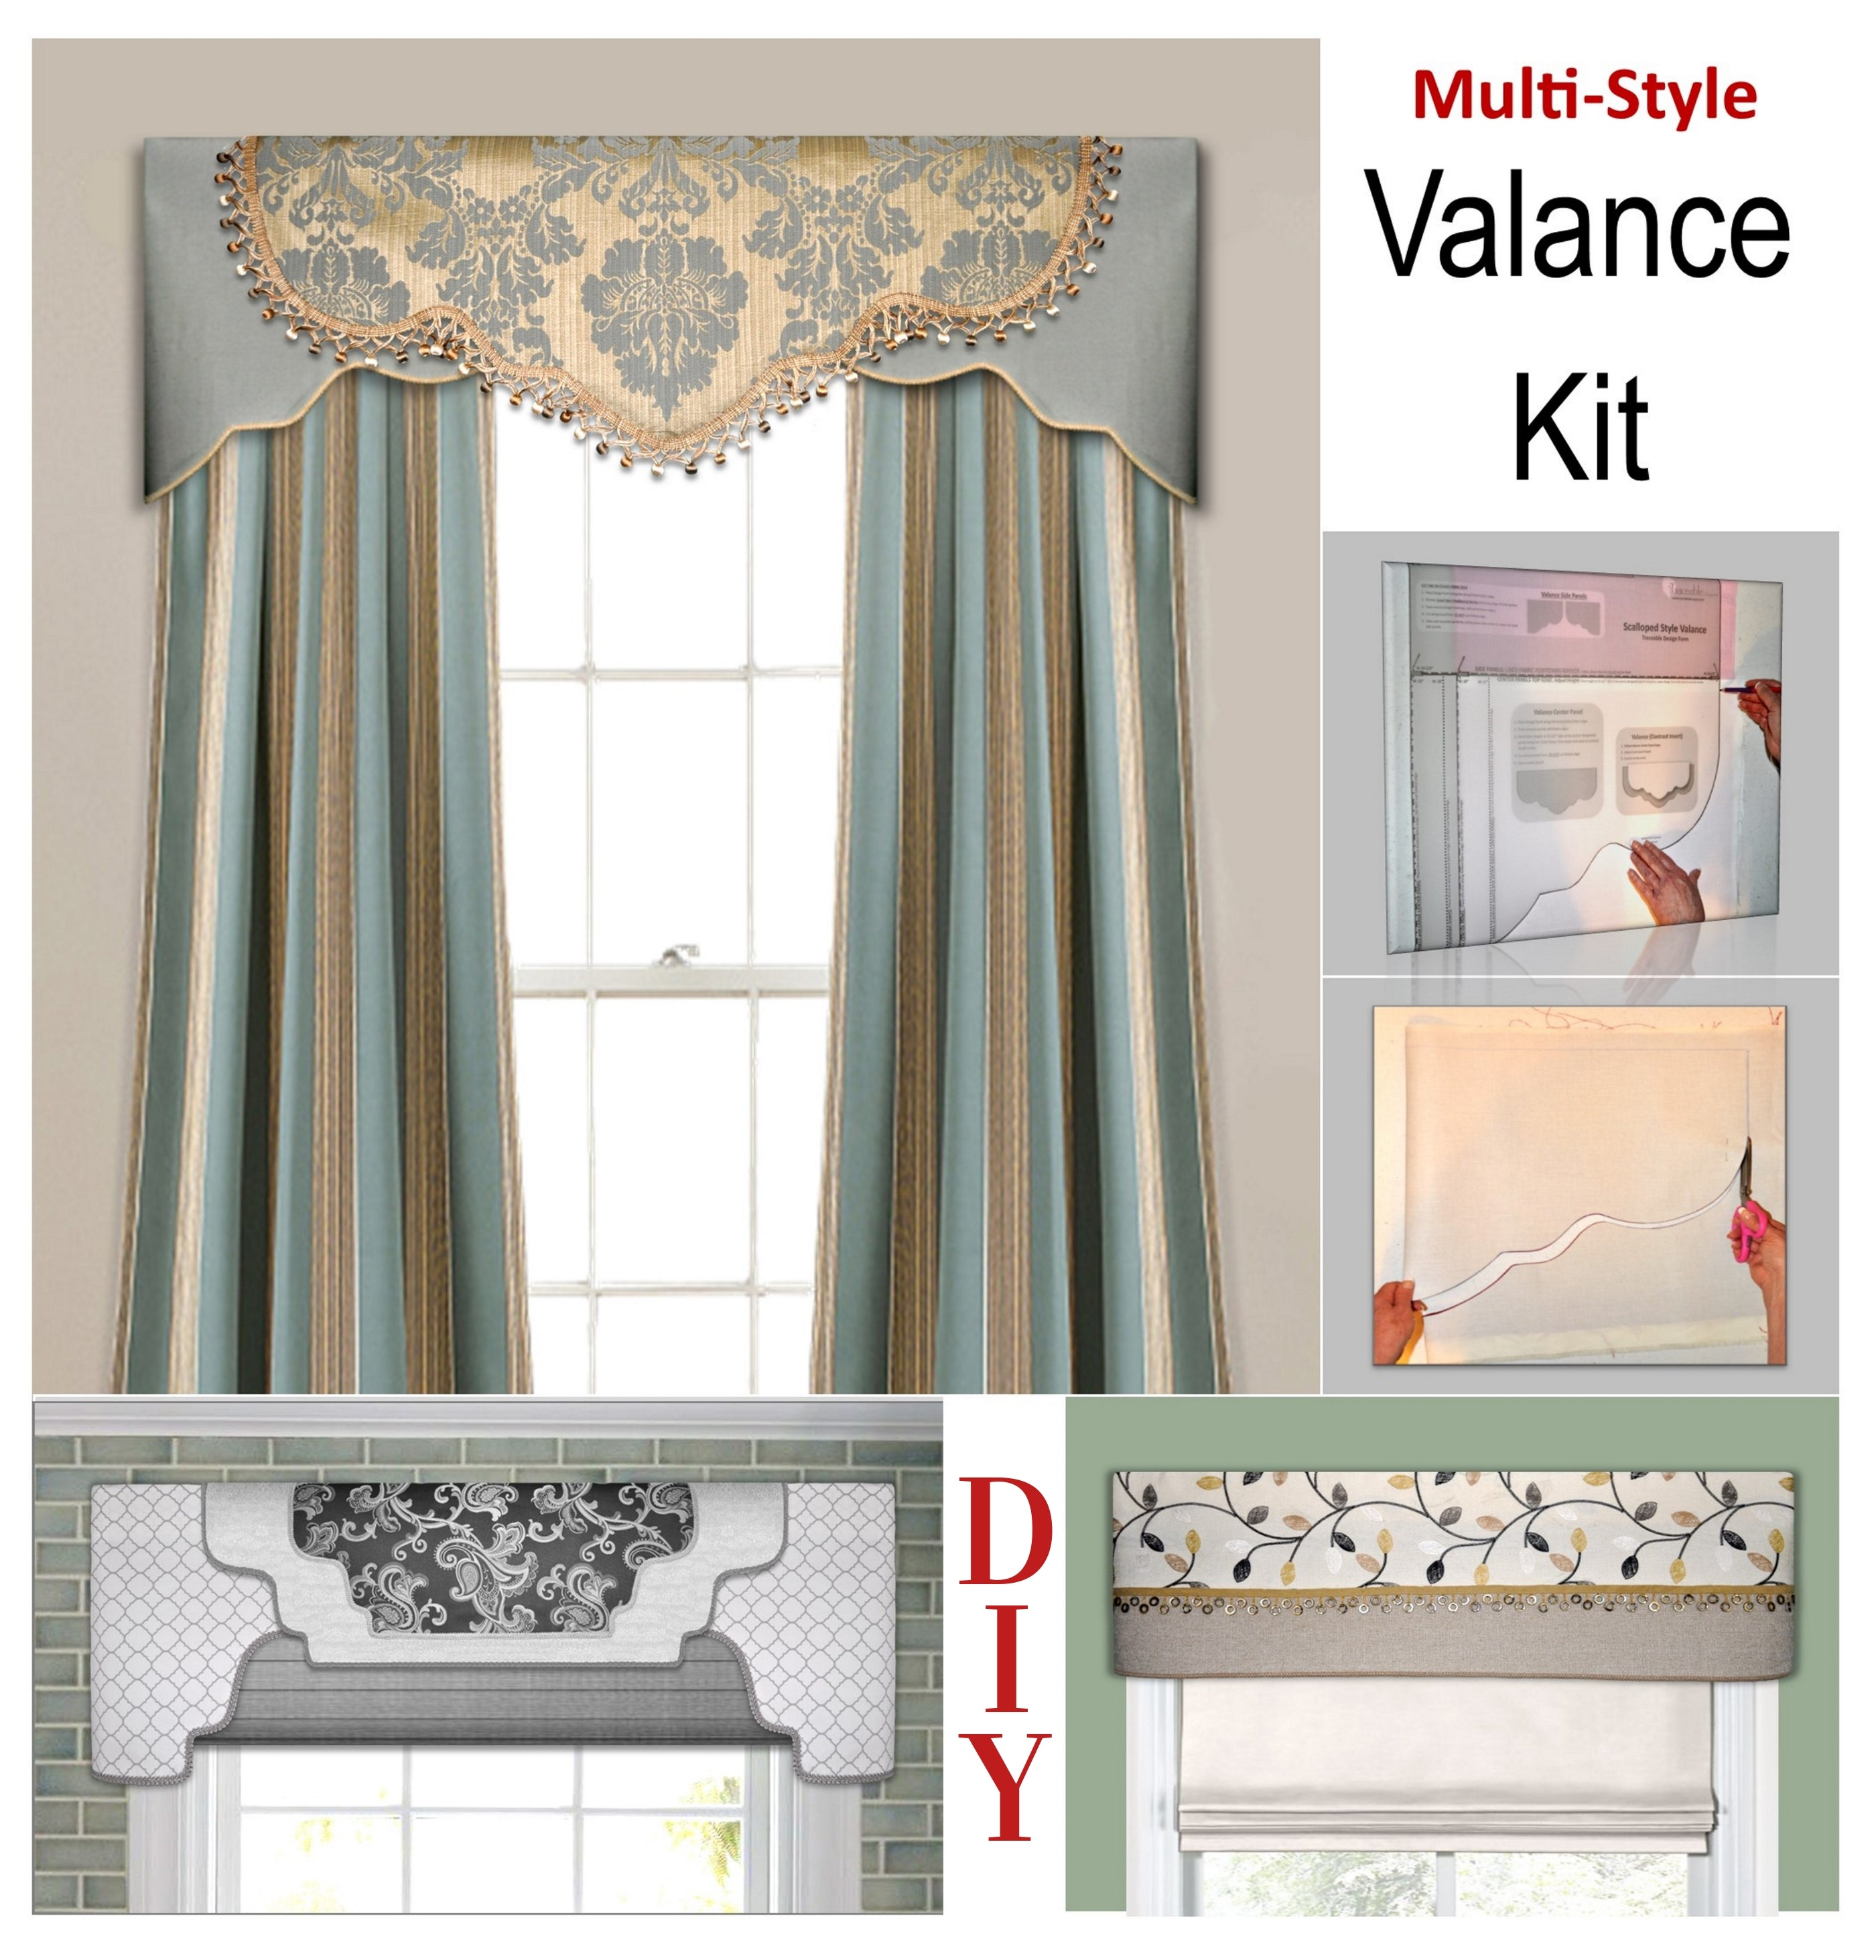 Diy Home Decor No Sew Cornice Valance Kit Fit Any Window Size Traceable Designer